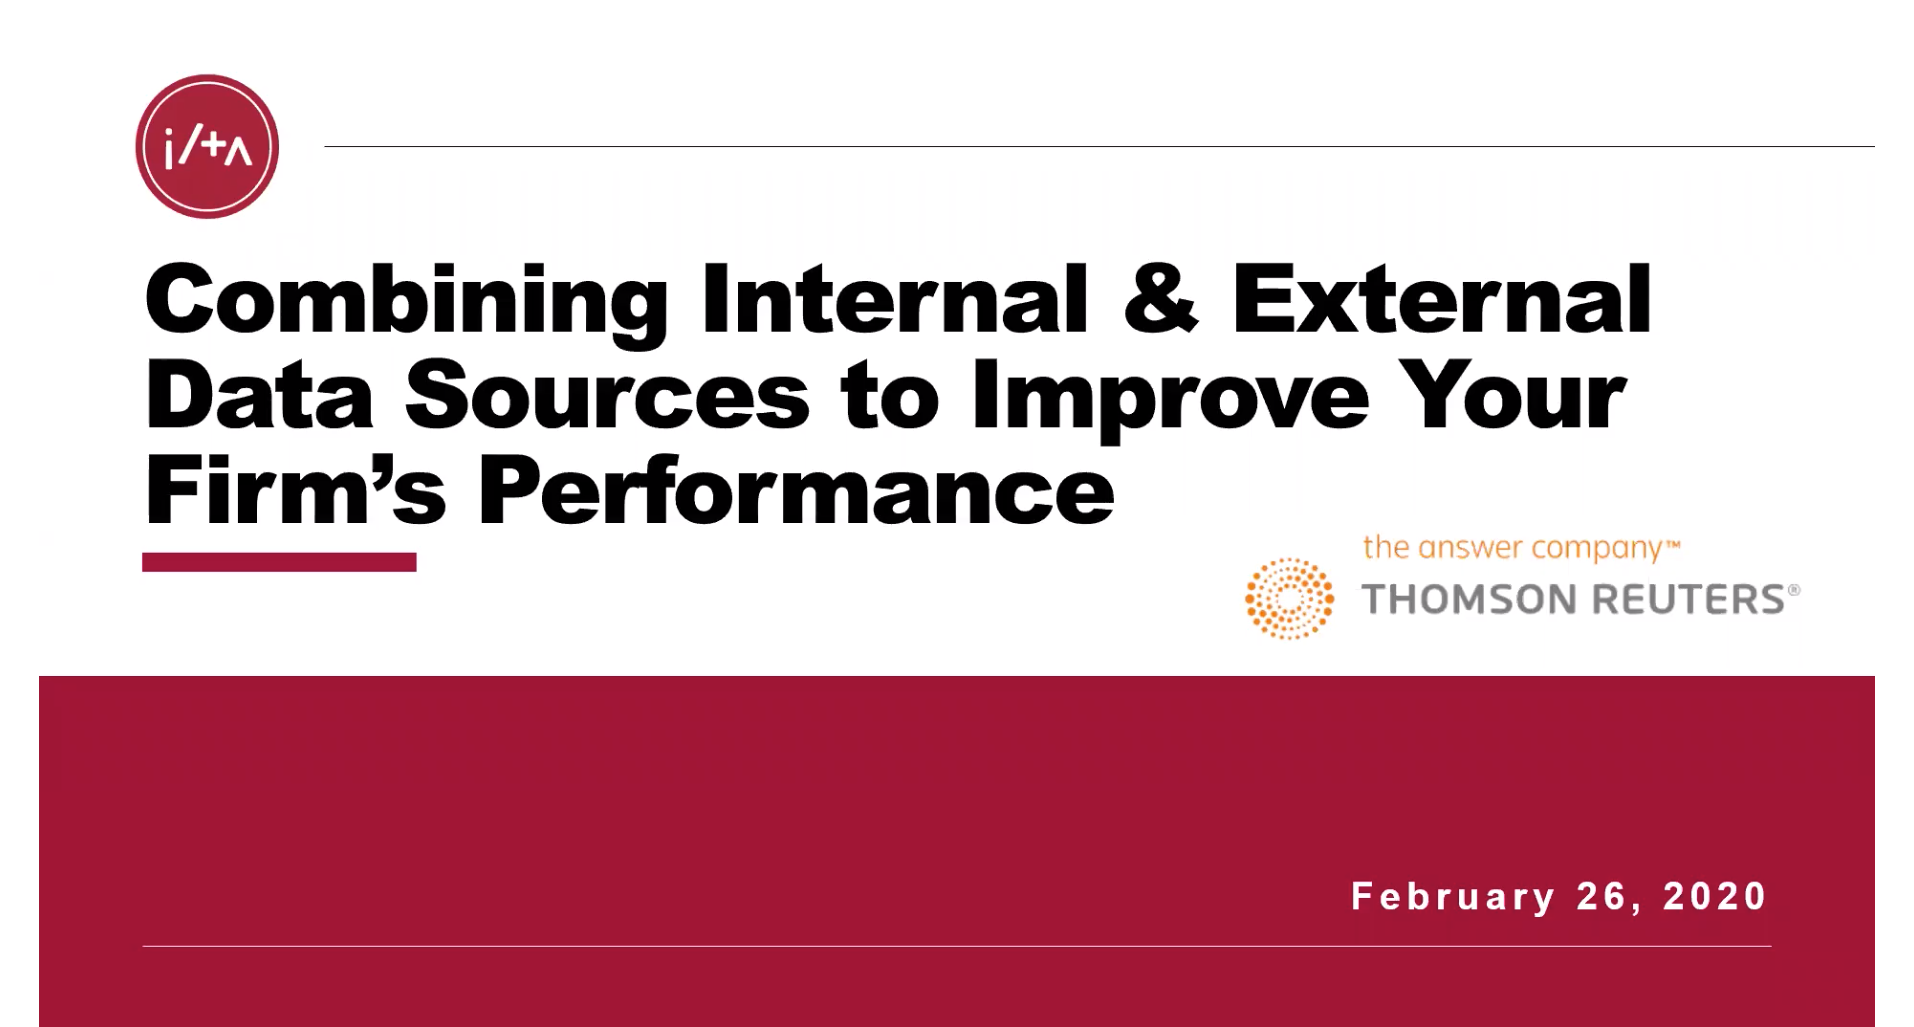 Combining Internal & External Data Sources to Improve Your Firm's Performance